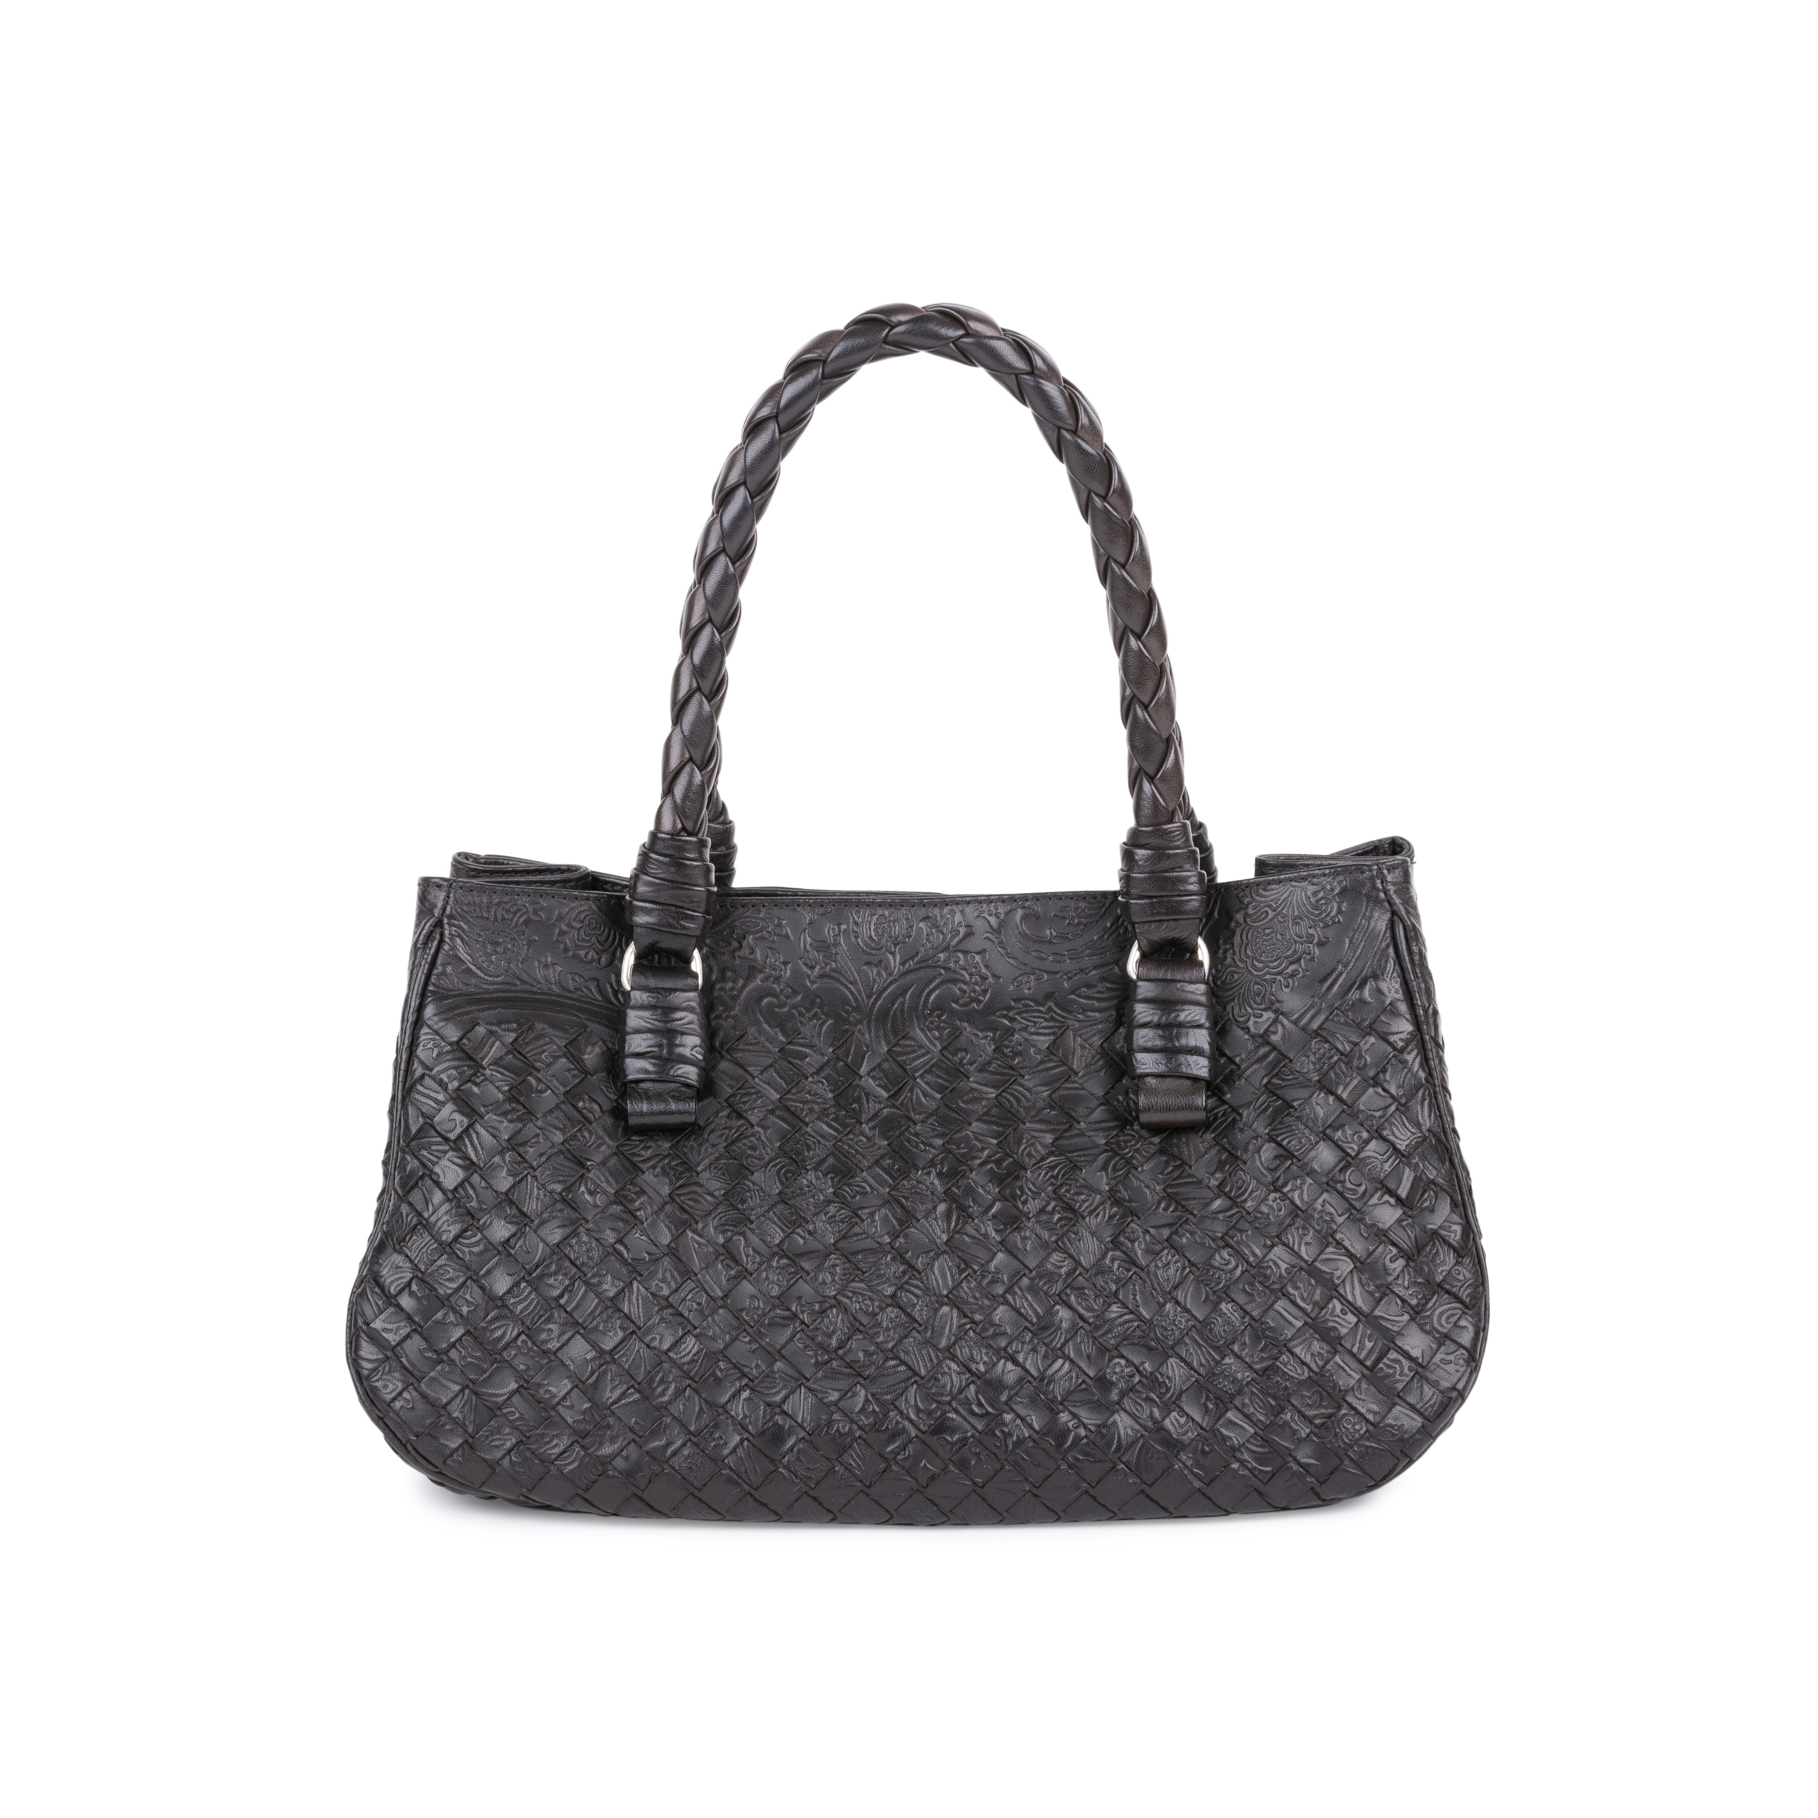 7316595d17d6 Authentic Second Hand Bottega Veneta Embossed Intrecciato Leather Tote Bag  (PSS-594-00003) | THE FIFTH COLLECTION